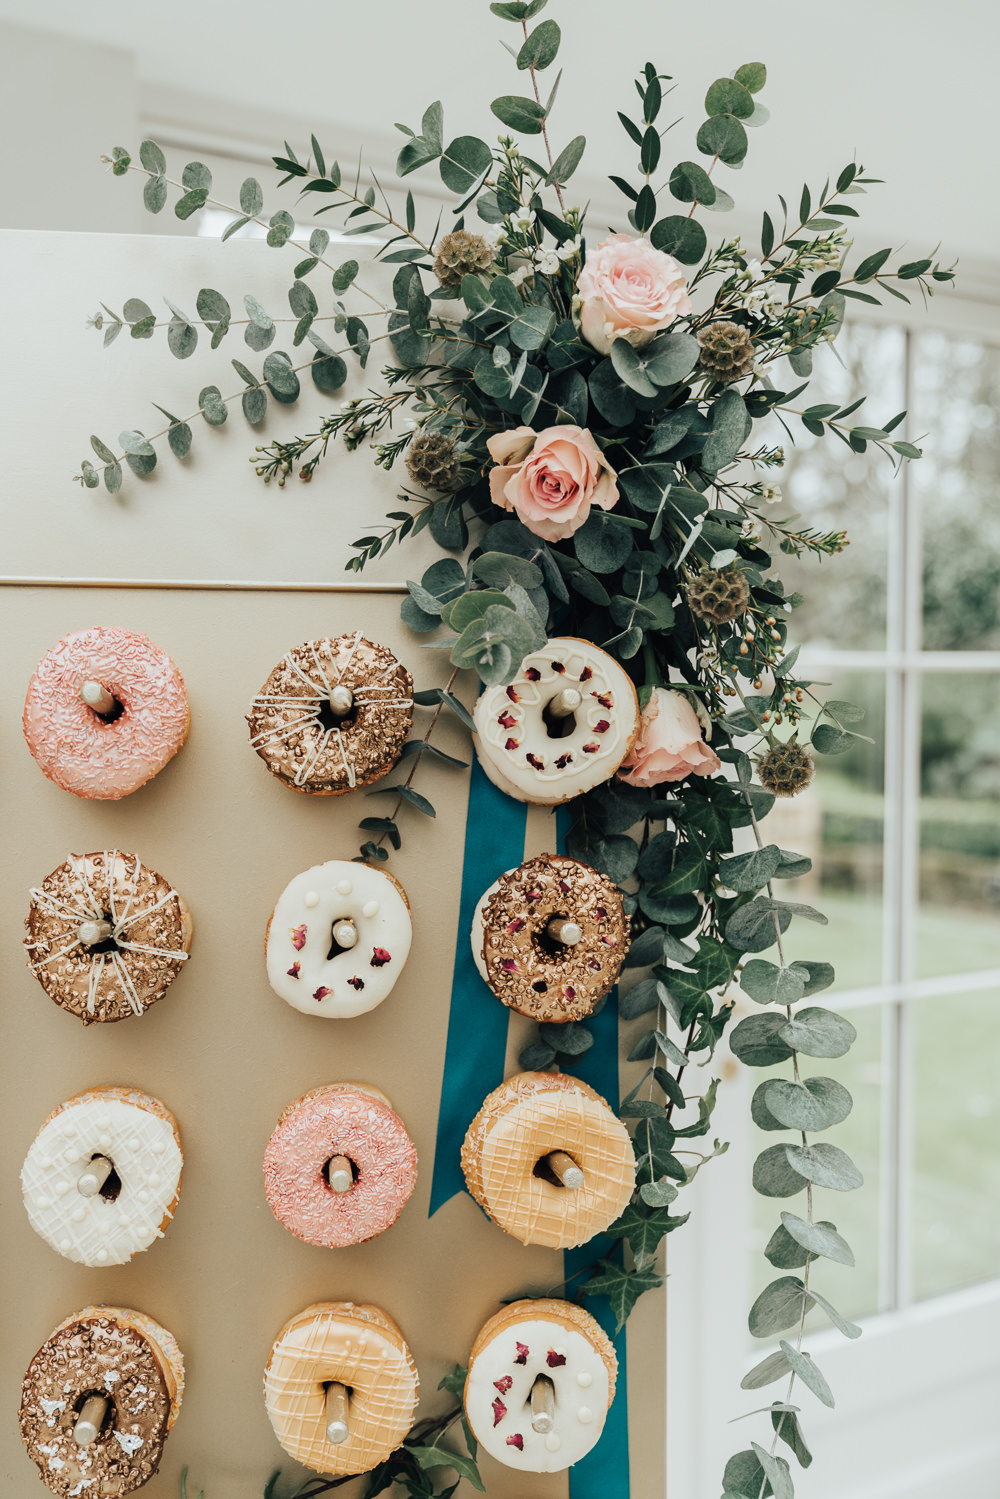 Donuts Doughnuts Stand Wall Greenery Floral Flowers Pegs Hoop Wedding Ideas Rebecca Carpenter Photography